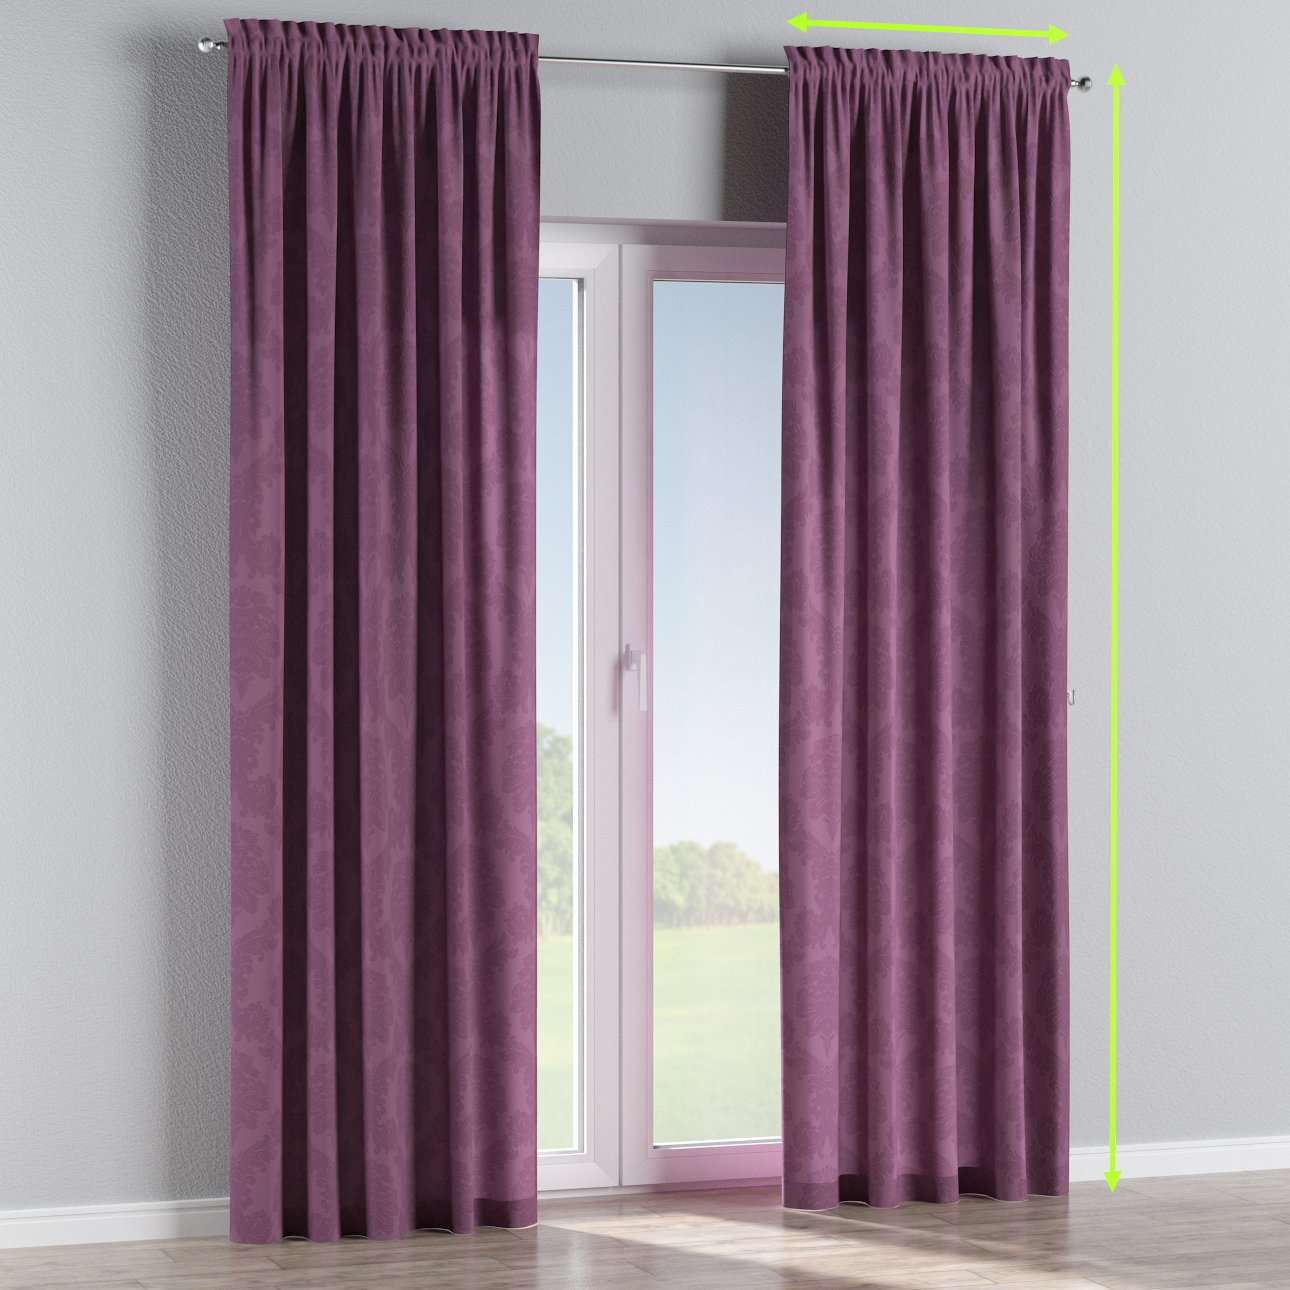 Slot and frill lined curtains in collection Damasco, fabric: 613-75